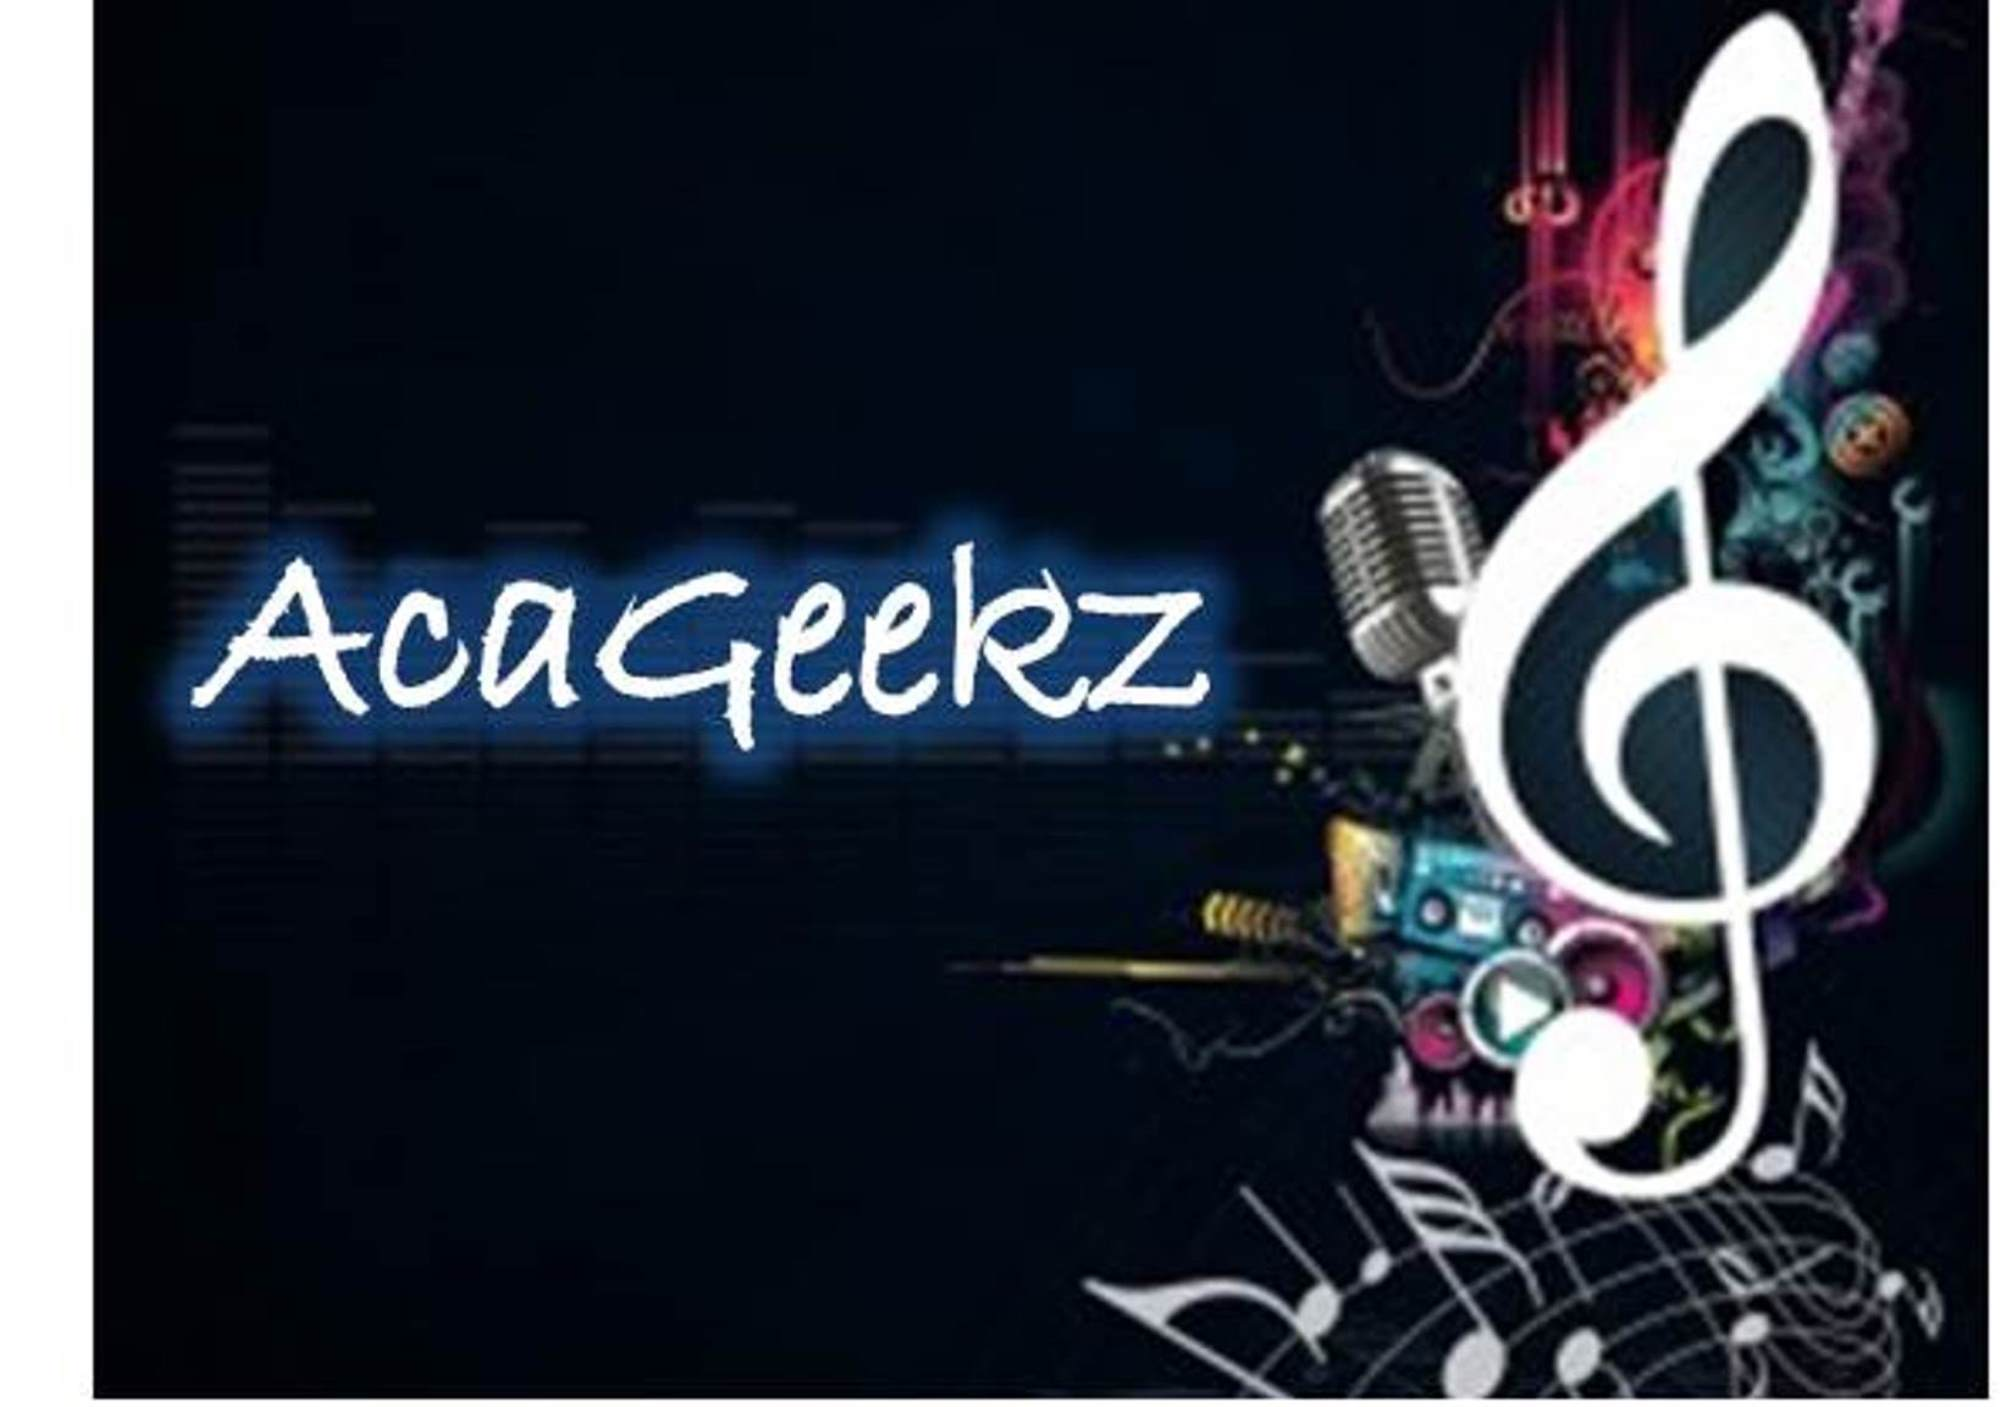 Go to: Podcast: Acageekz